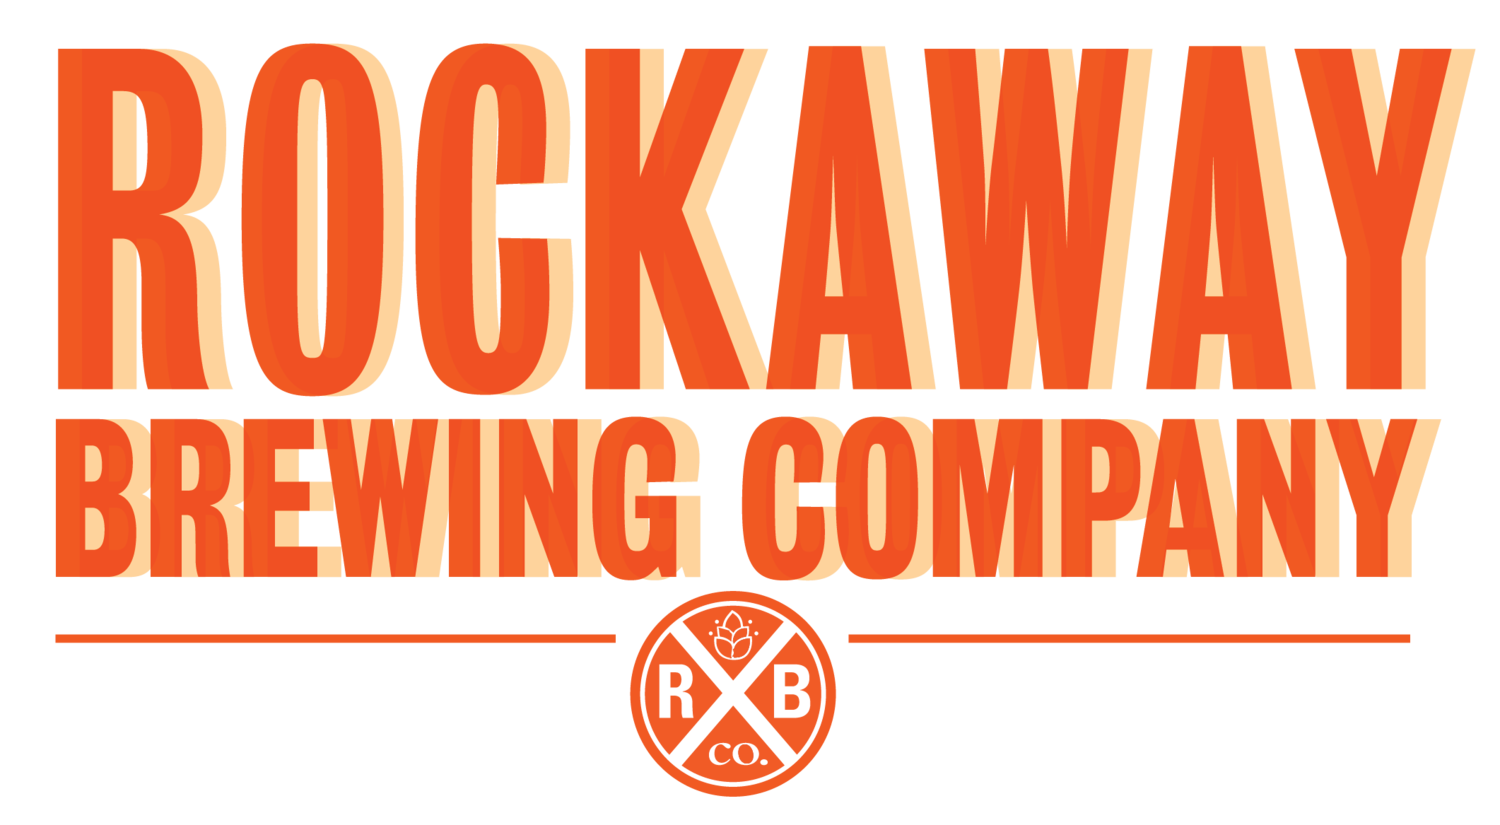 Rockaway Brewing Co.